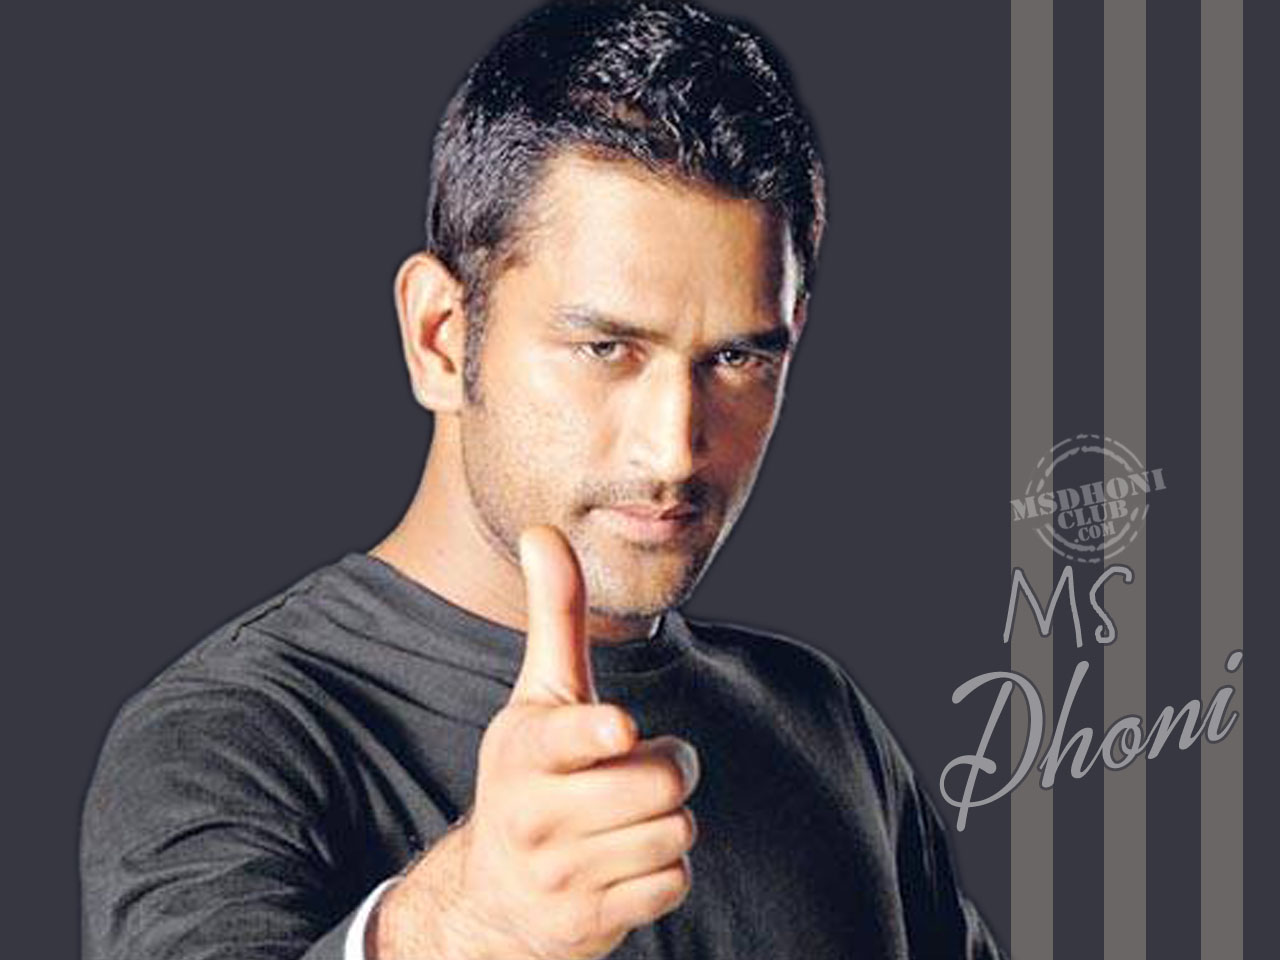 Picpapers King Cricket Ms Dhoni